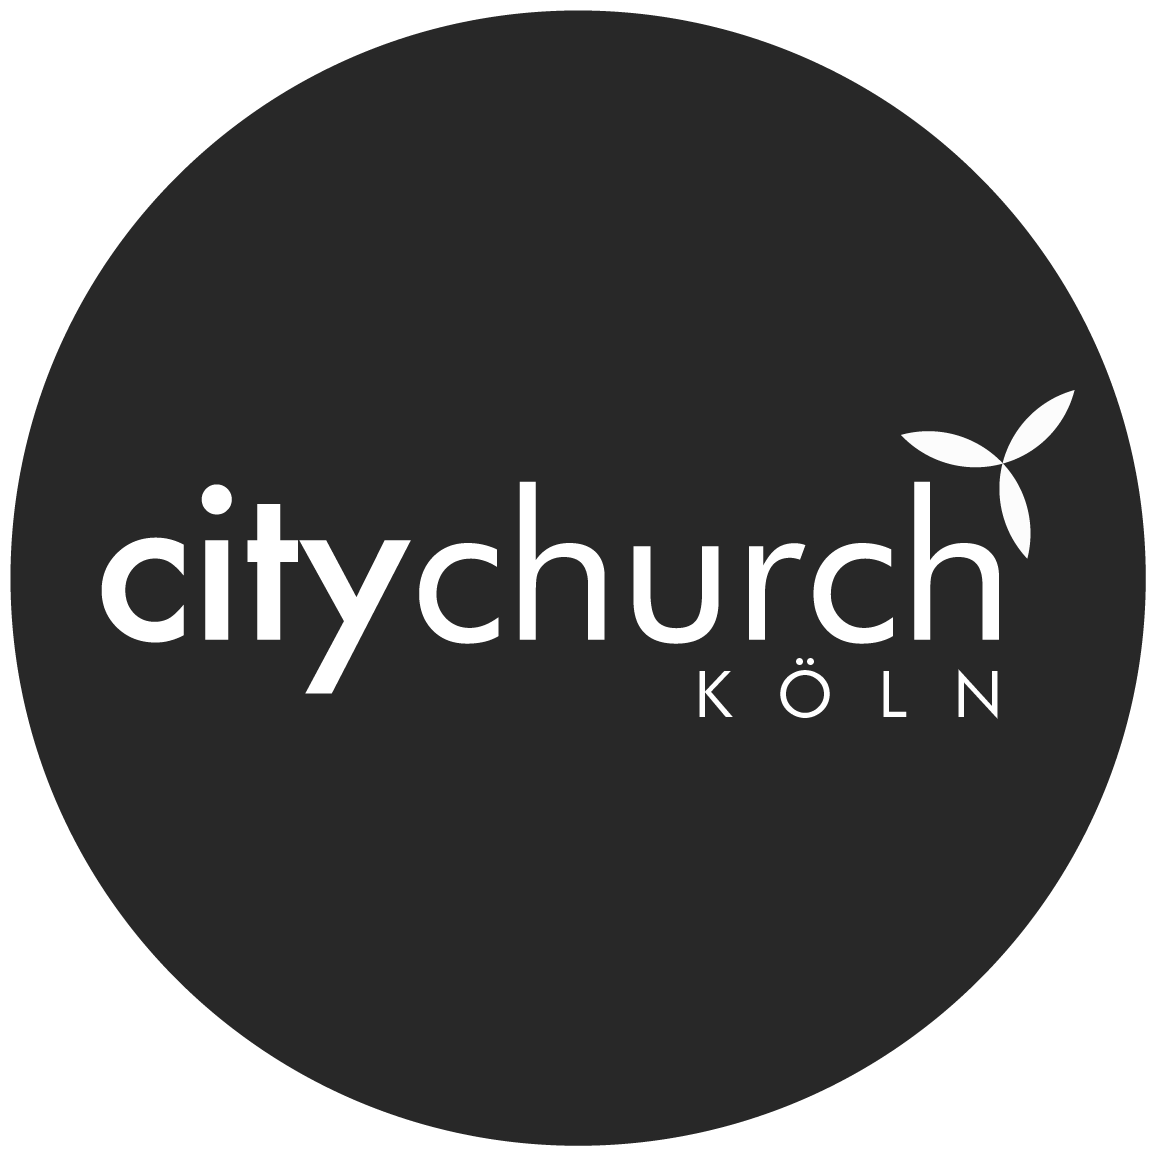 Köln City Church